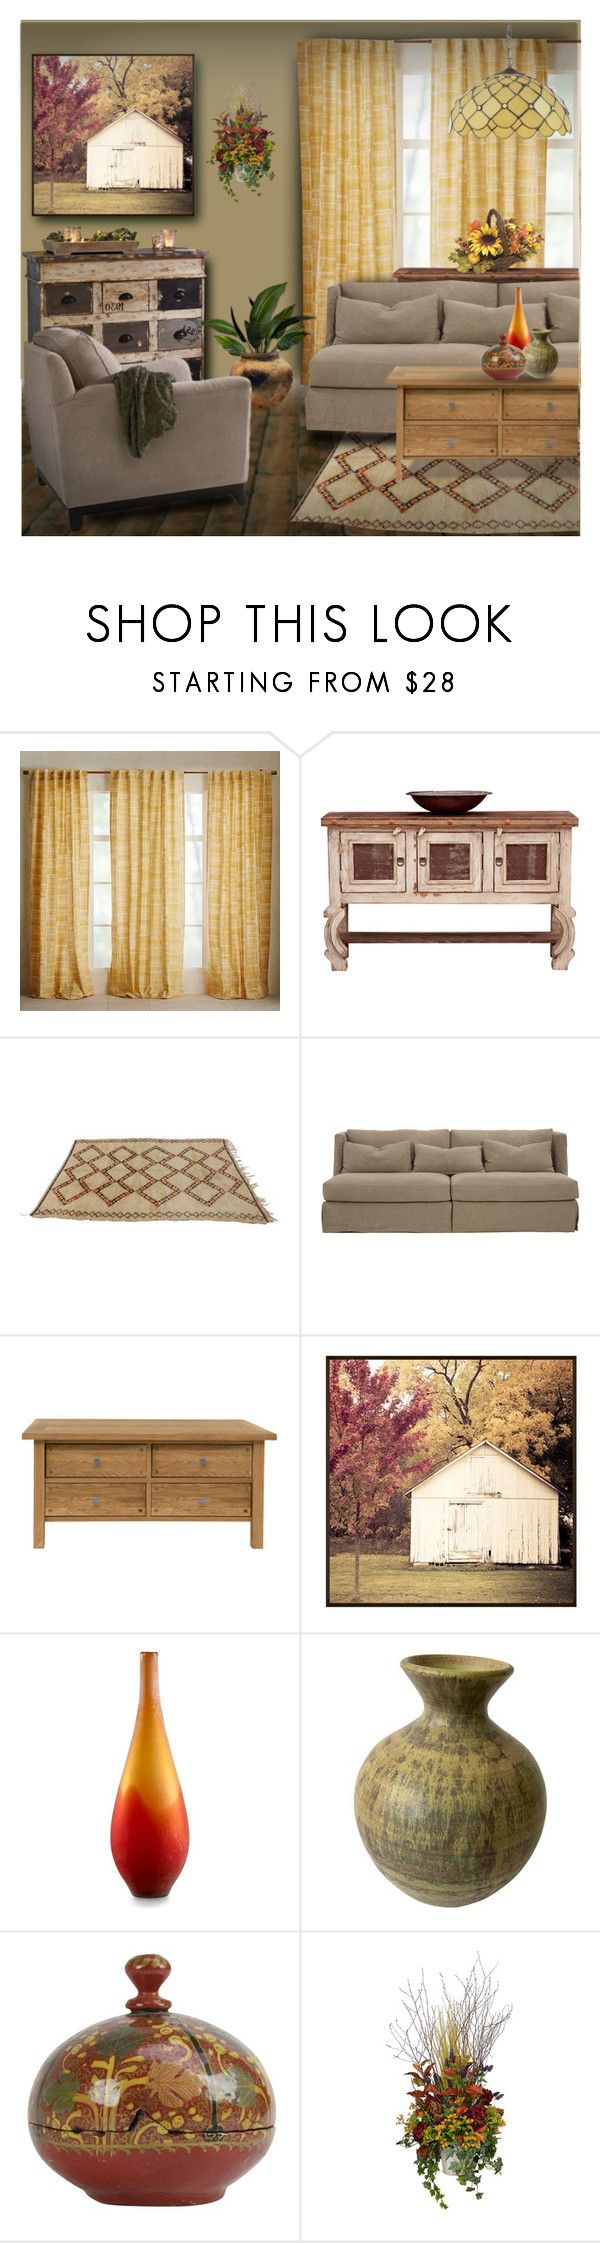 Best 25 pottery barn fall ideas that you will like on - Interior designer discount pottery barn ...